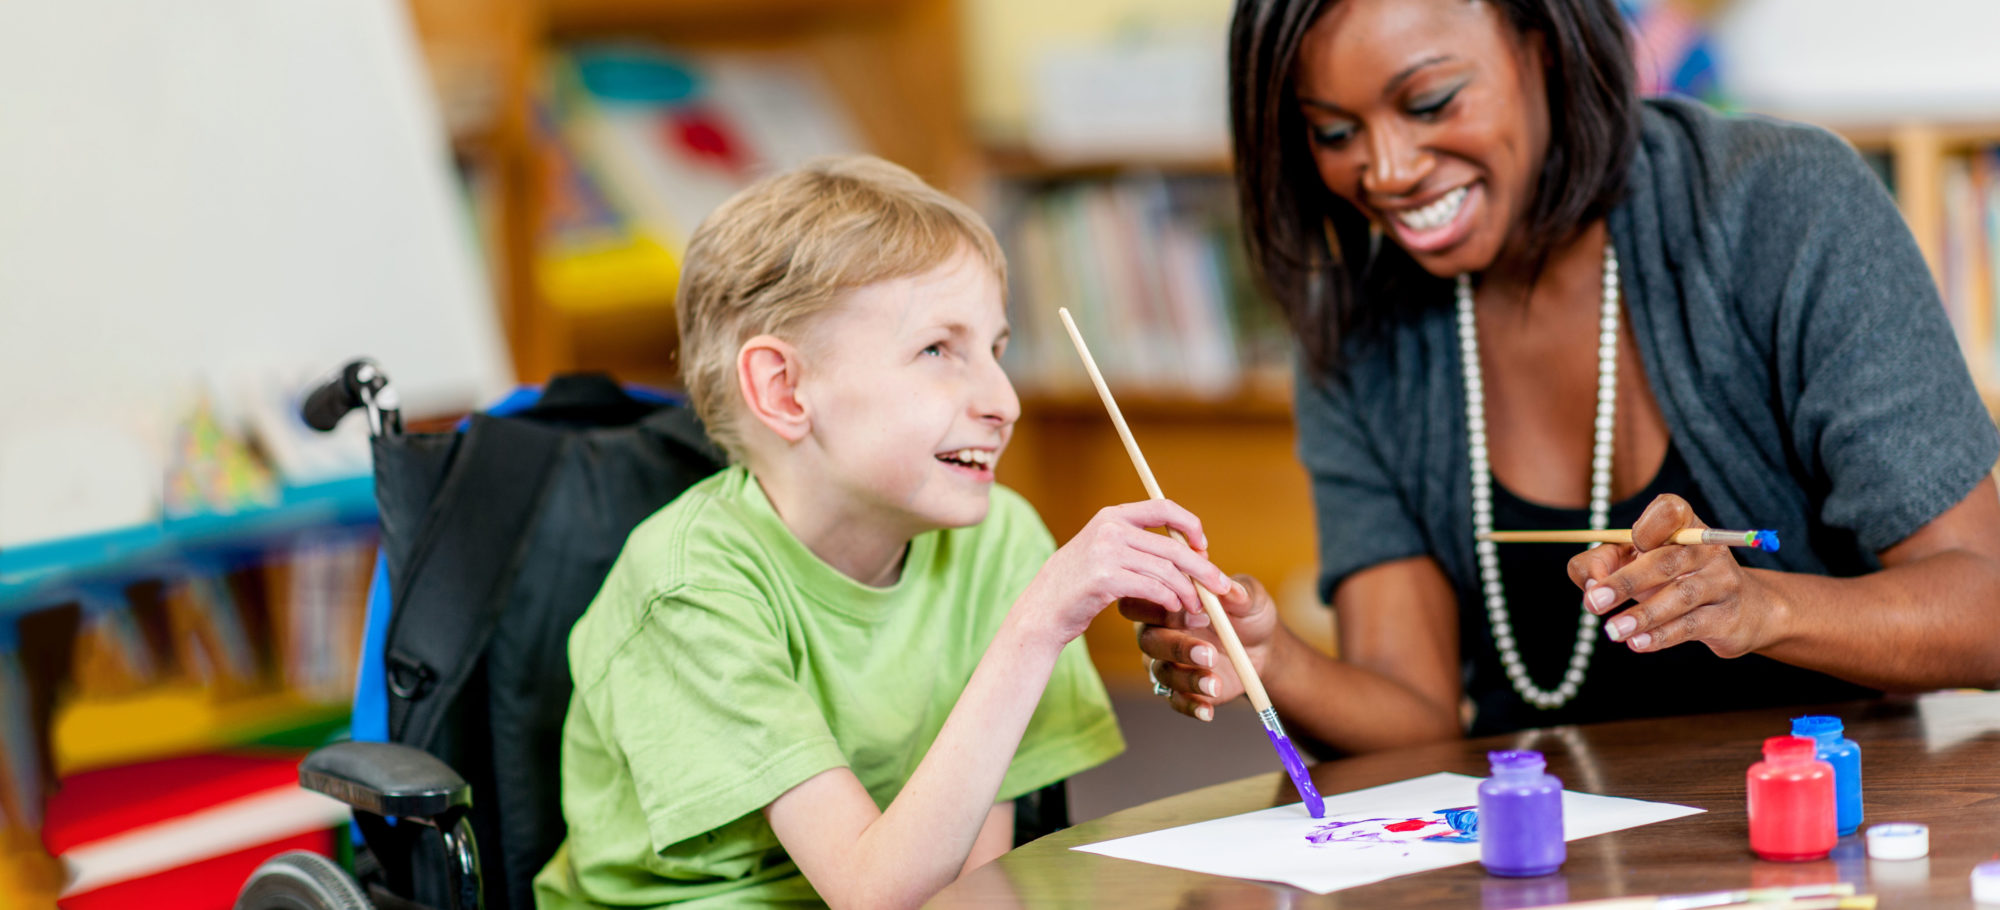 Special Education teacher interacting with student in a classroom.